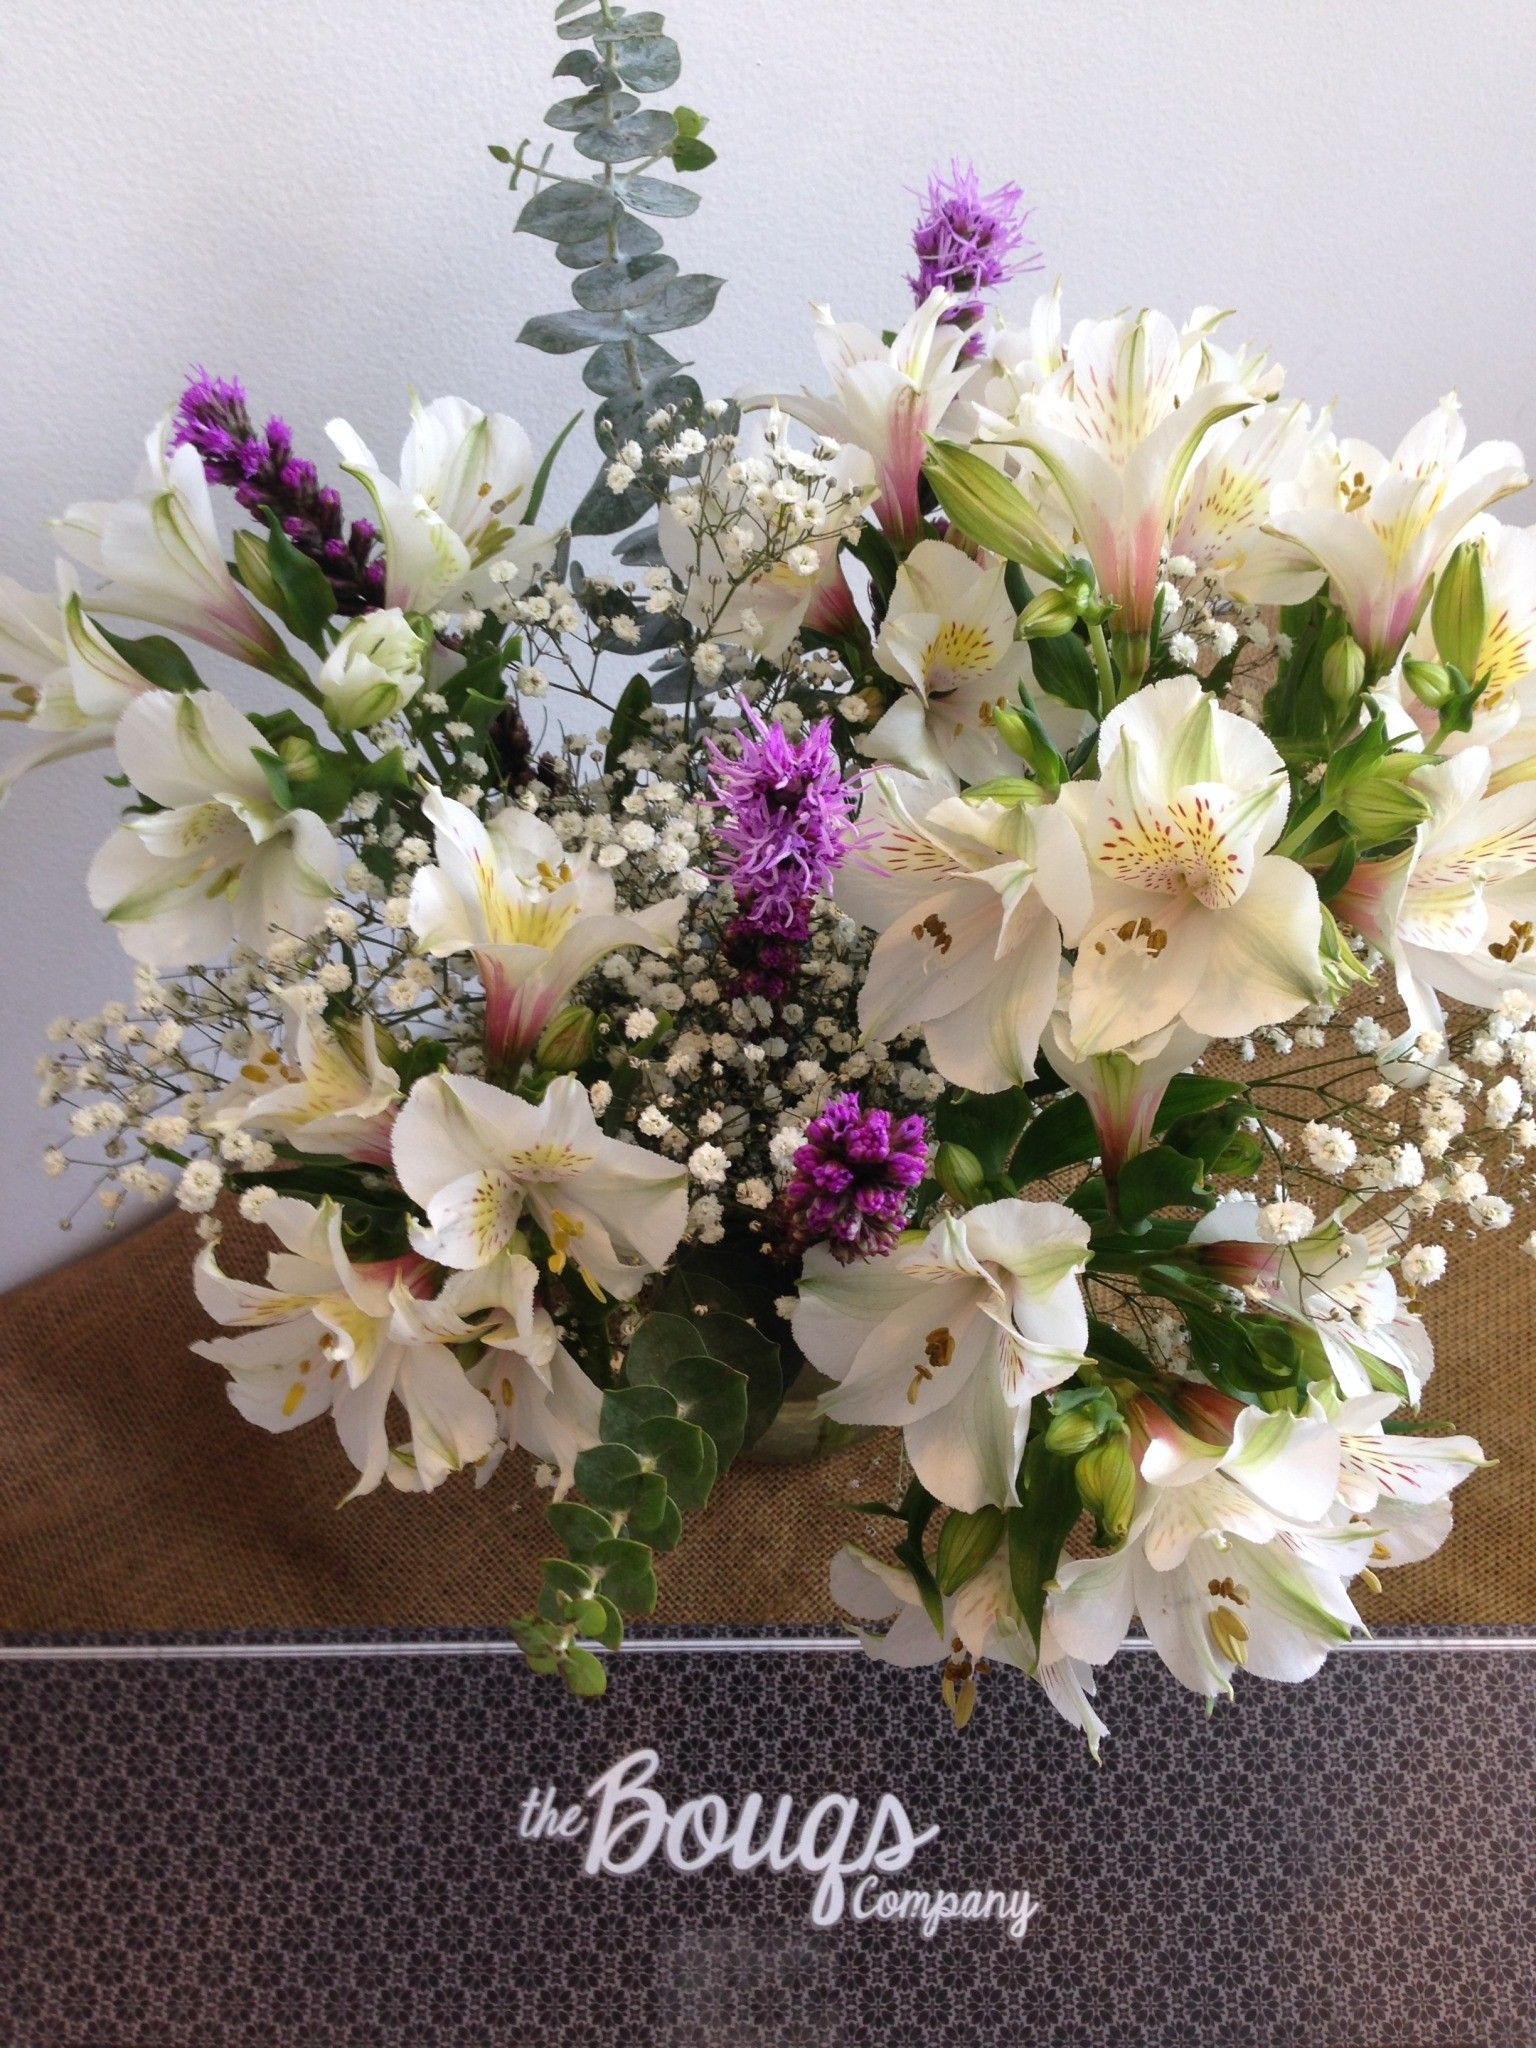 Alstroemeria flowers make everything better. Send a box to